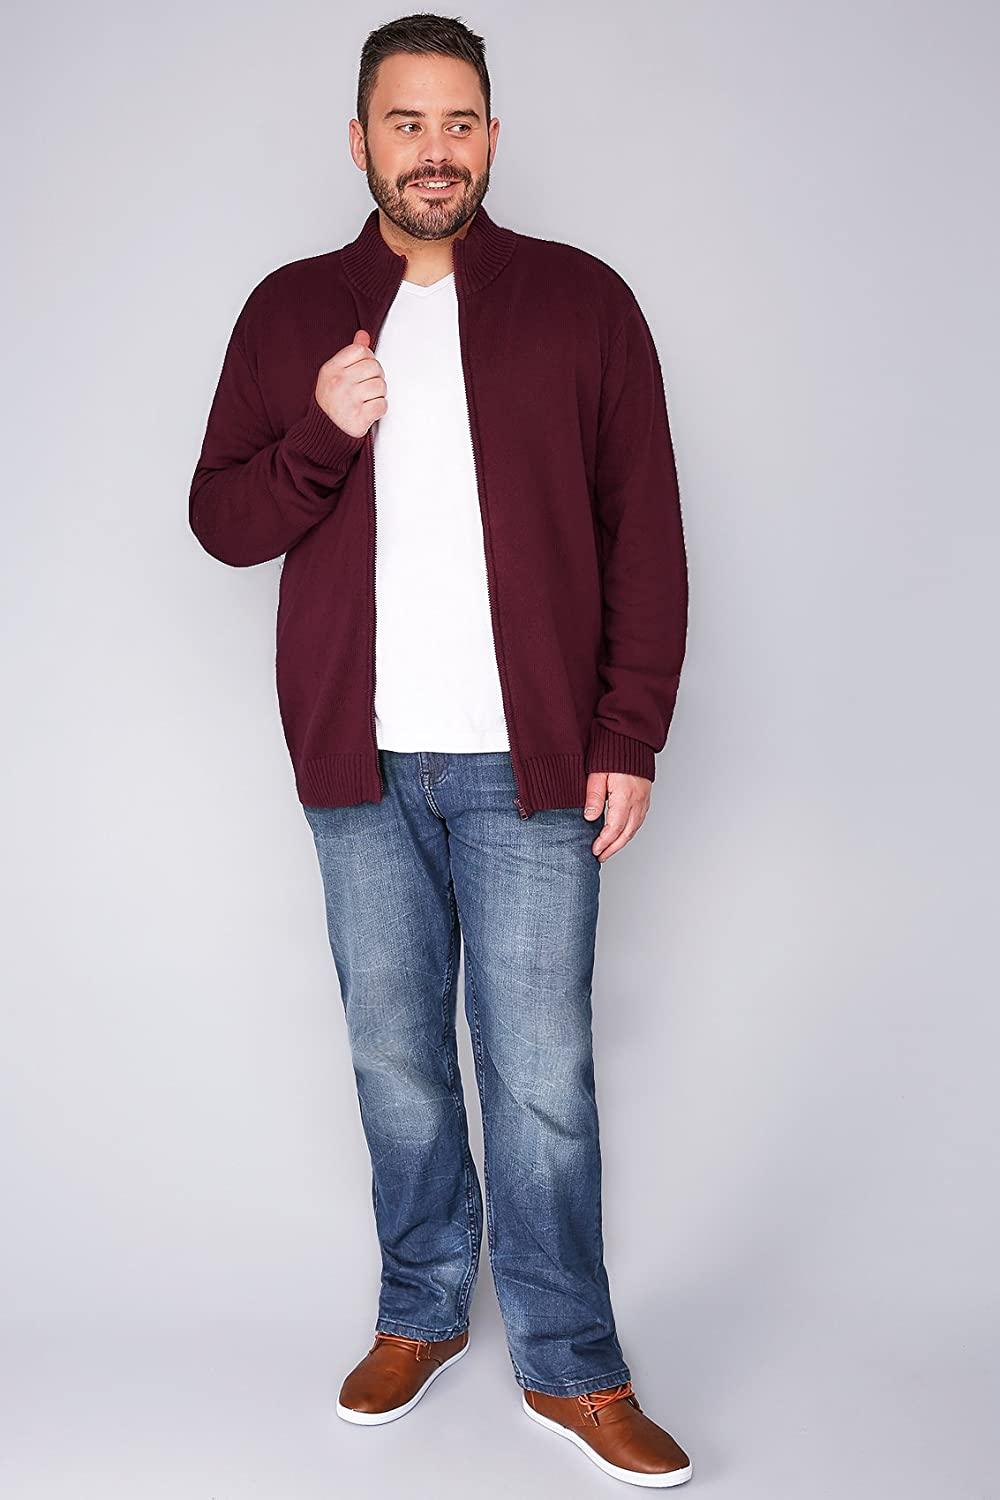 Mens Badrhino Burgundy Knitted Zip Sweater With Funnel Neck - Tall